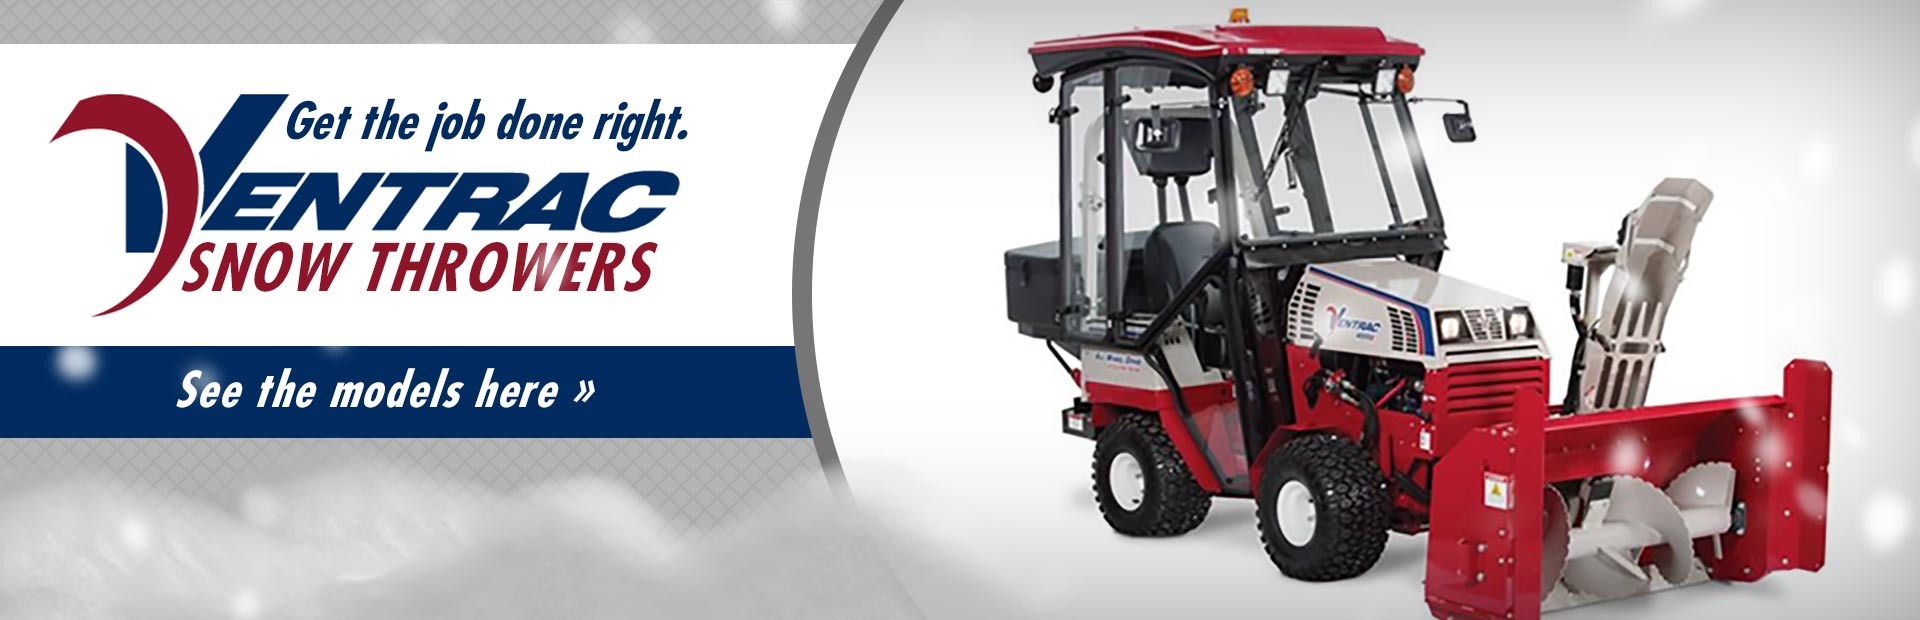 Ventrac Snow Throwers: Click here to view the models.